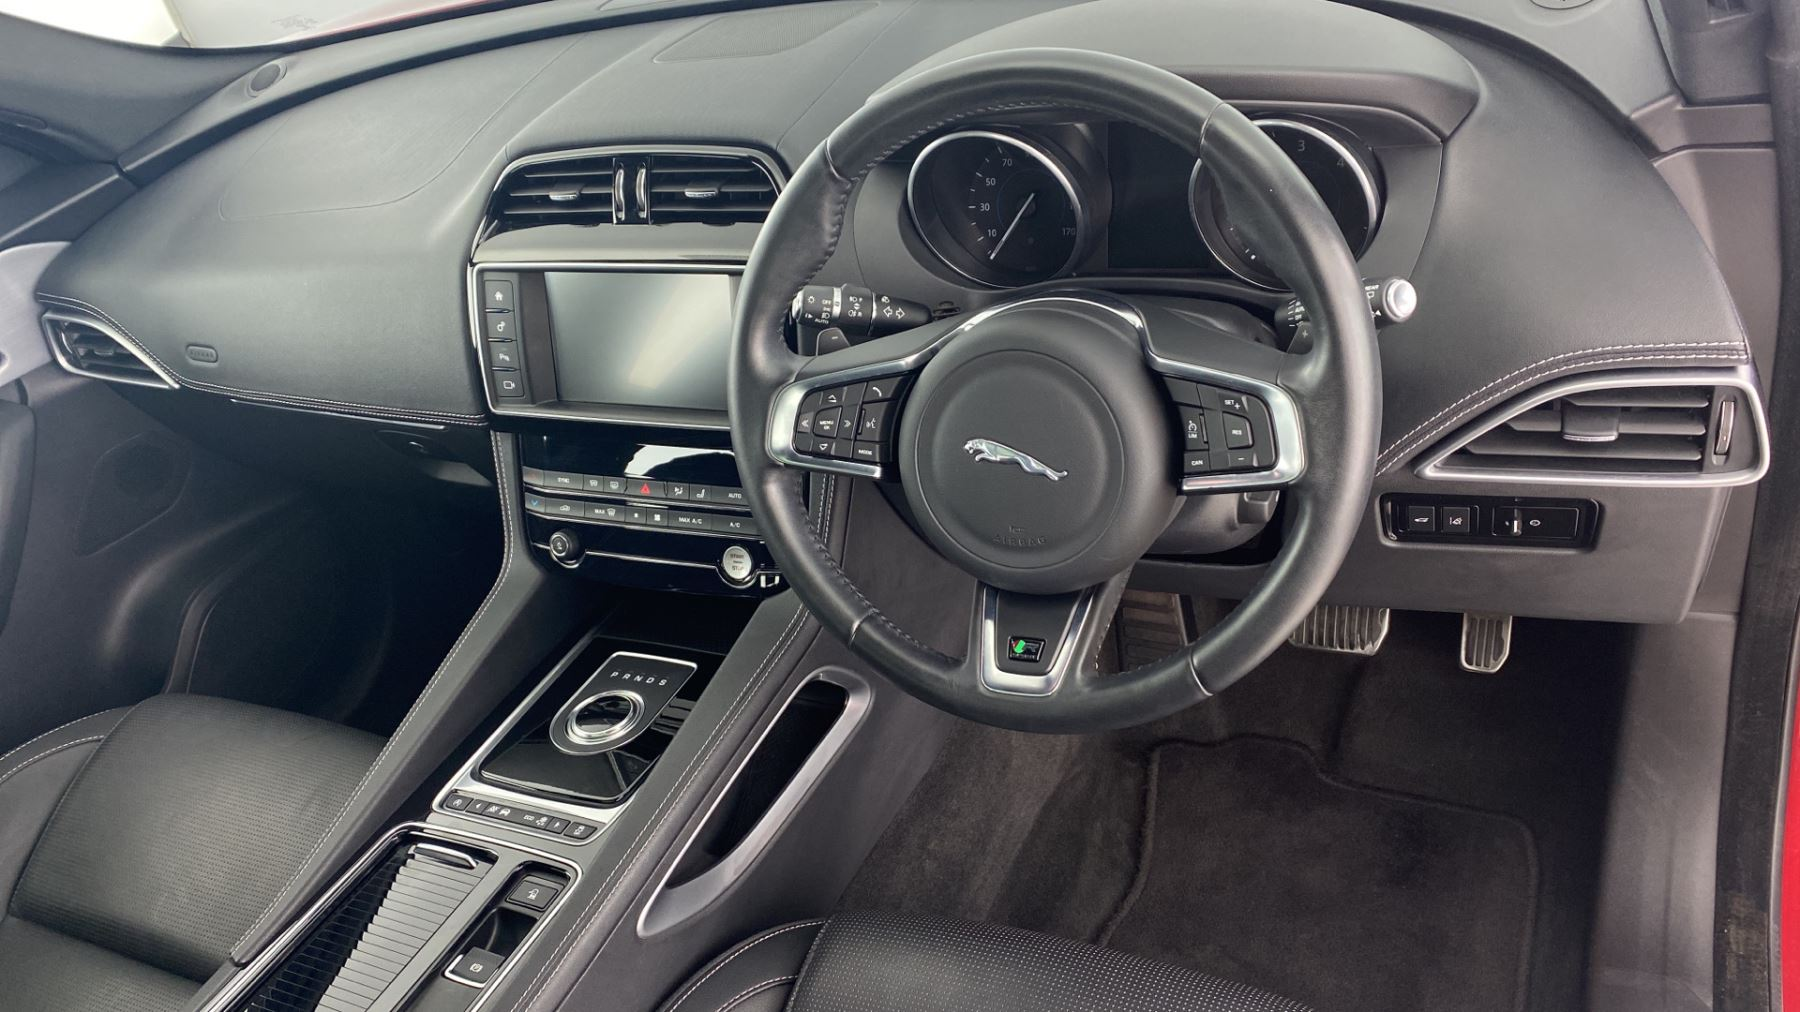 Jaguar F-PACE 2.0d R-Sport AWD - Sliding Panoramic Roof - Rear View Camera image 9